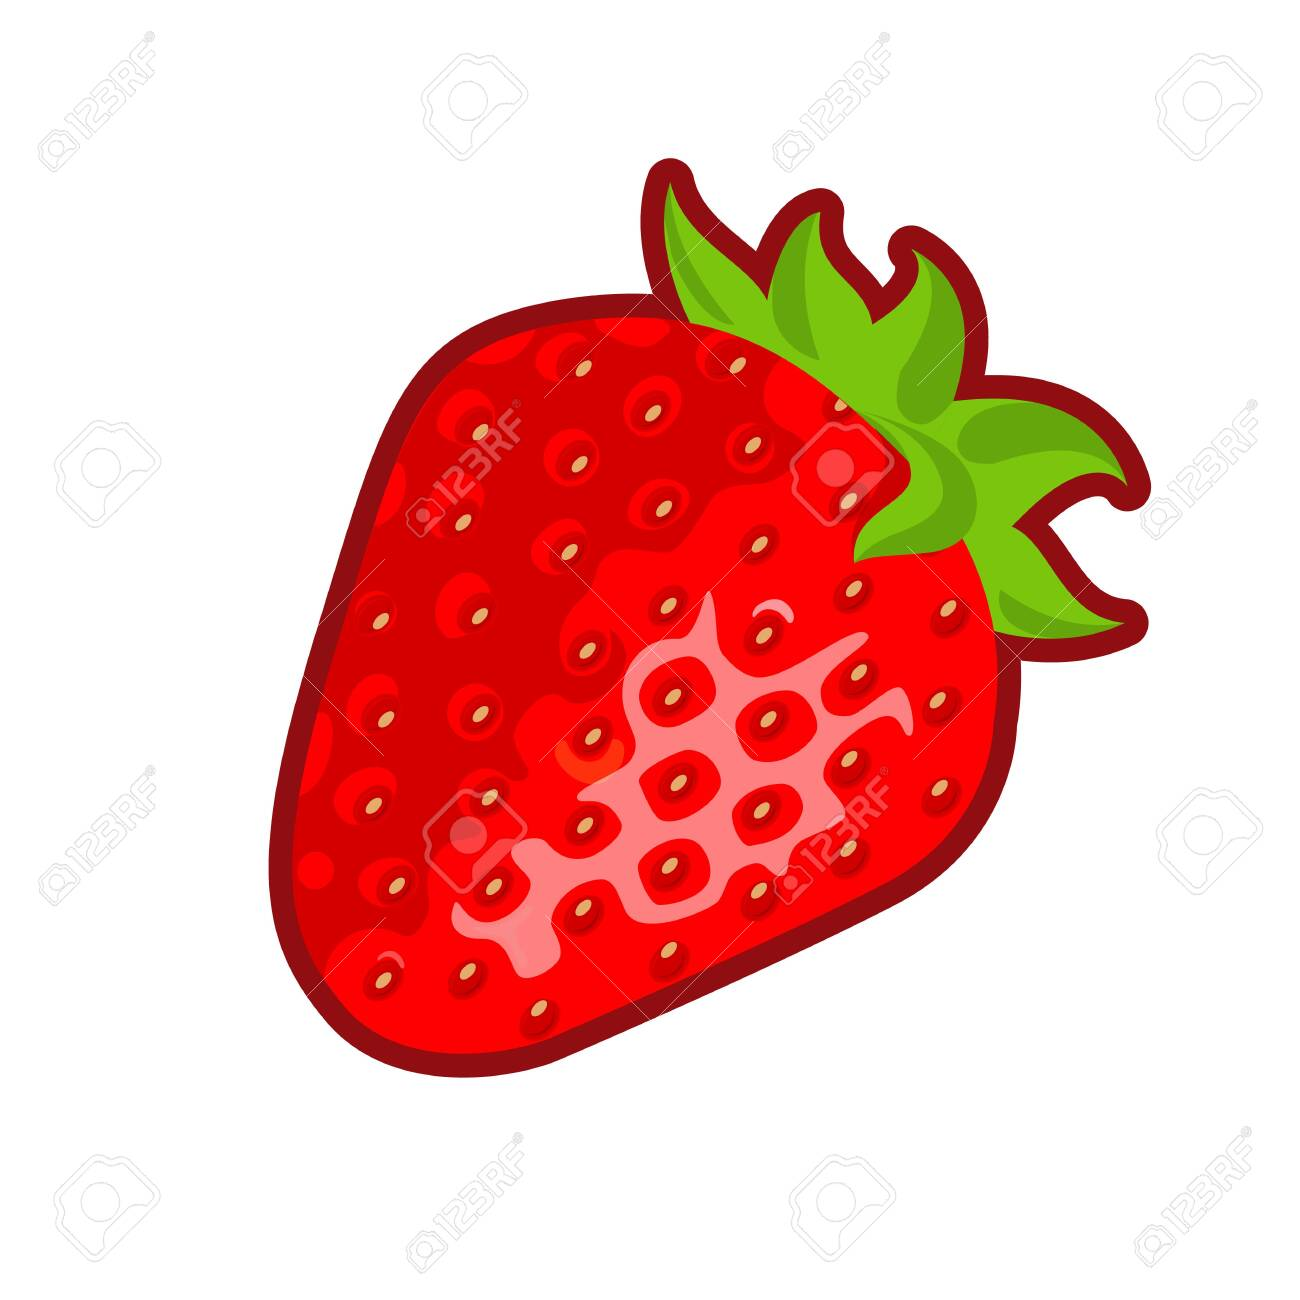 Vector illustration of red ripe strawberry on white background - 130346664